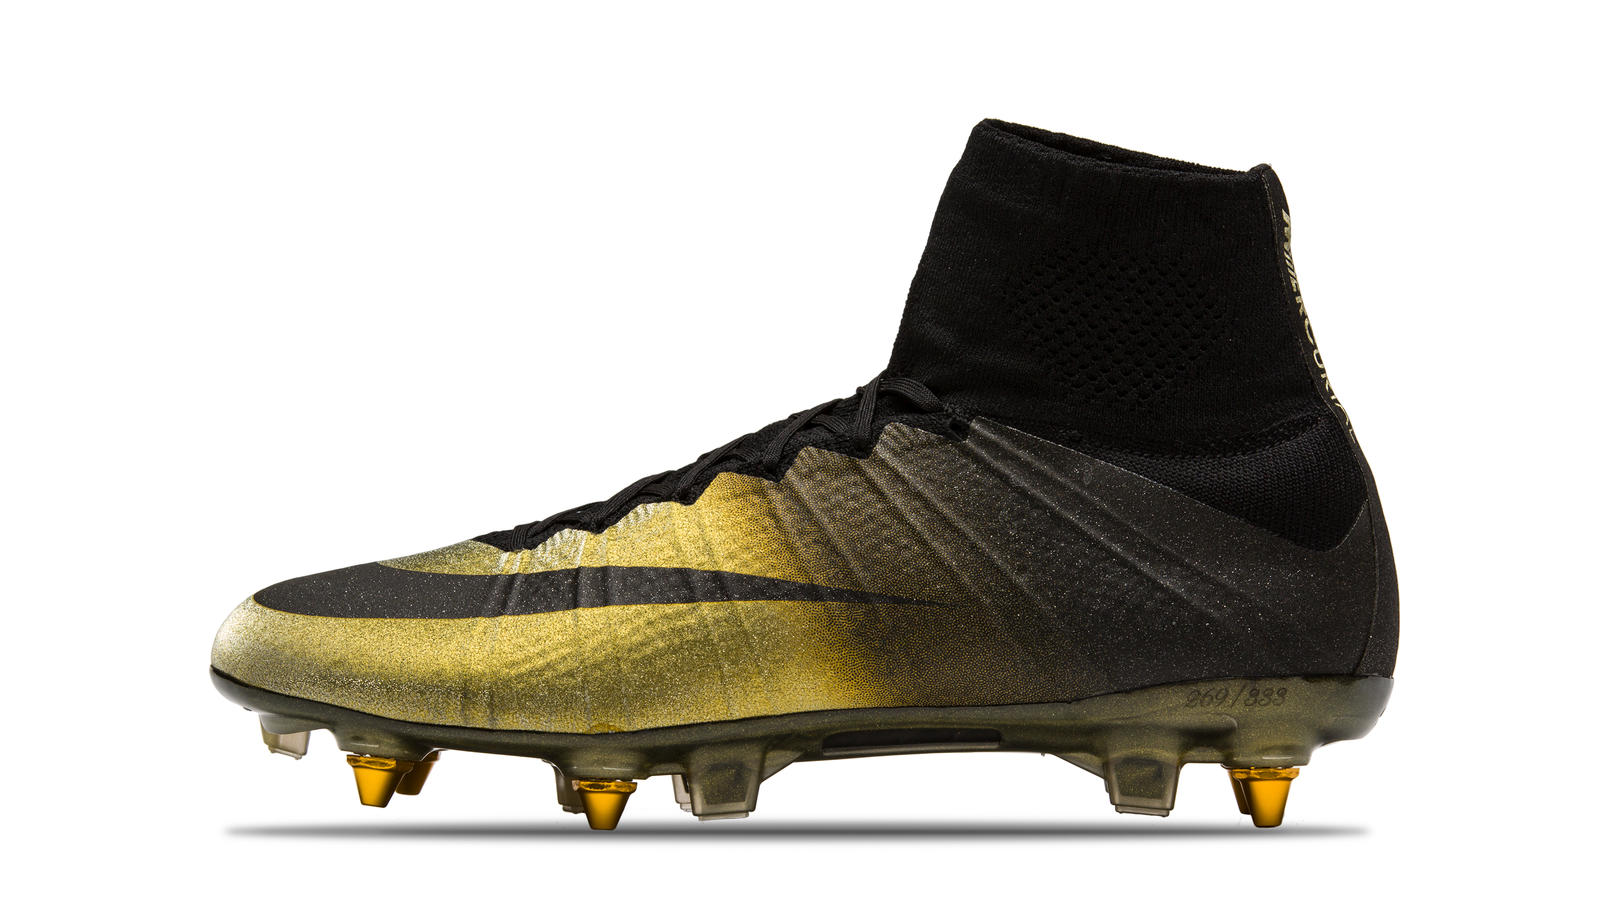 9b658dcdd6 ... FG Soccer Cleats - Rare Gold Black 2015 Mercrurial Superlfy IV CR7 SE  Ballon DOr Gold Black Diamond. 2015 MERCURIAL SUPERFLY . Nike ...